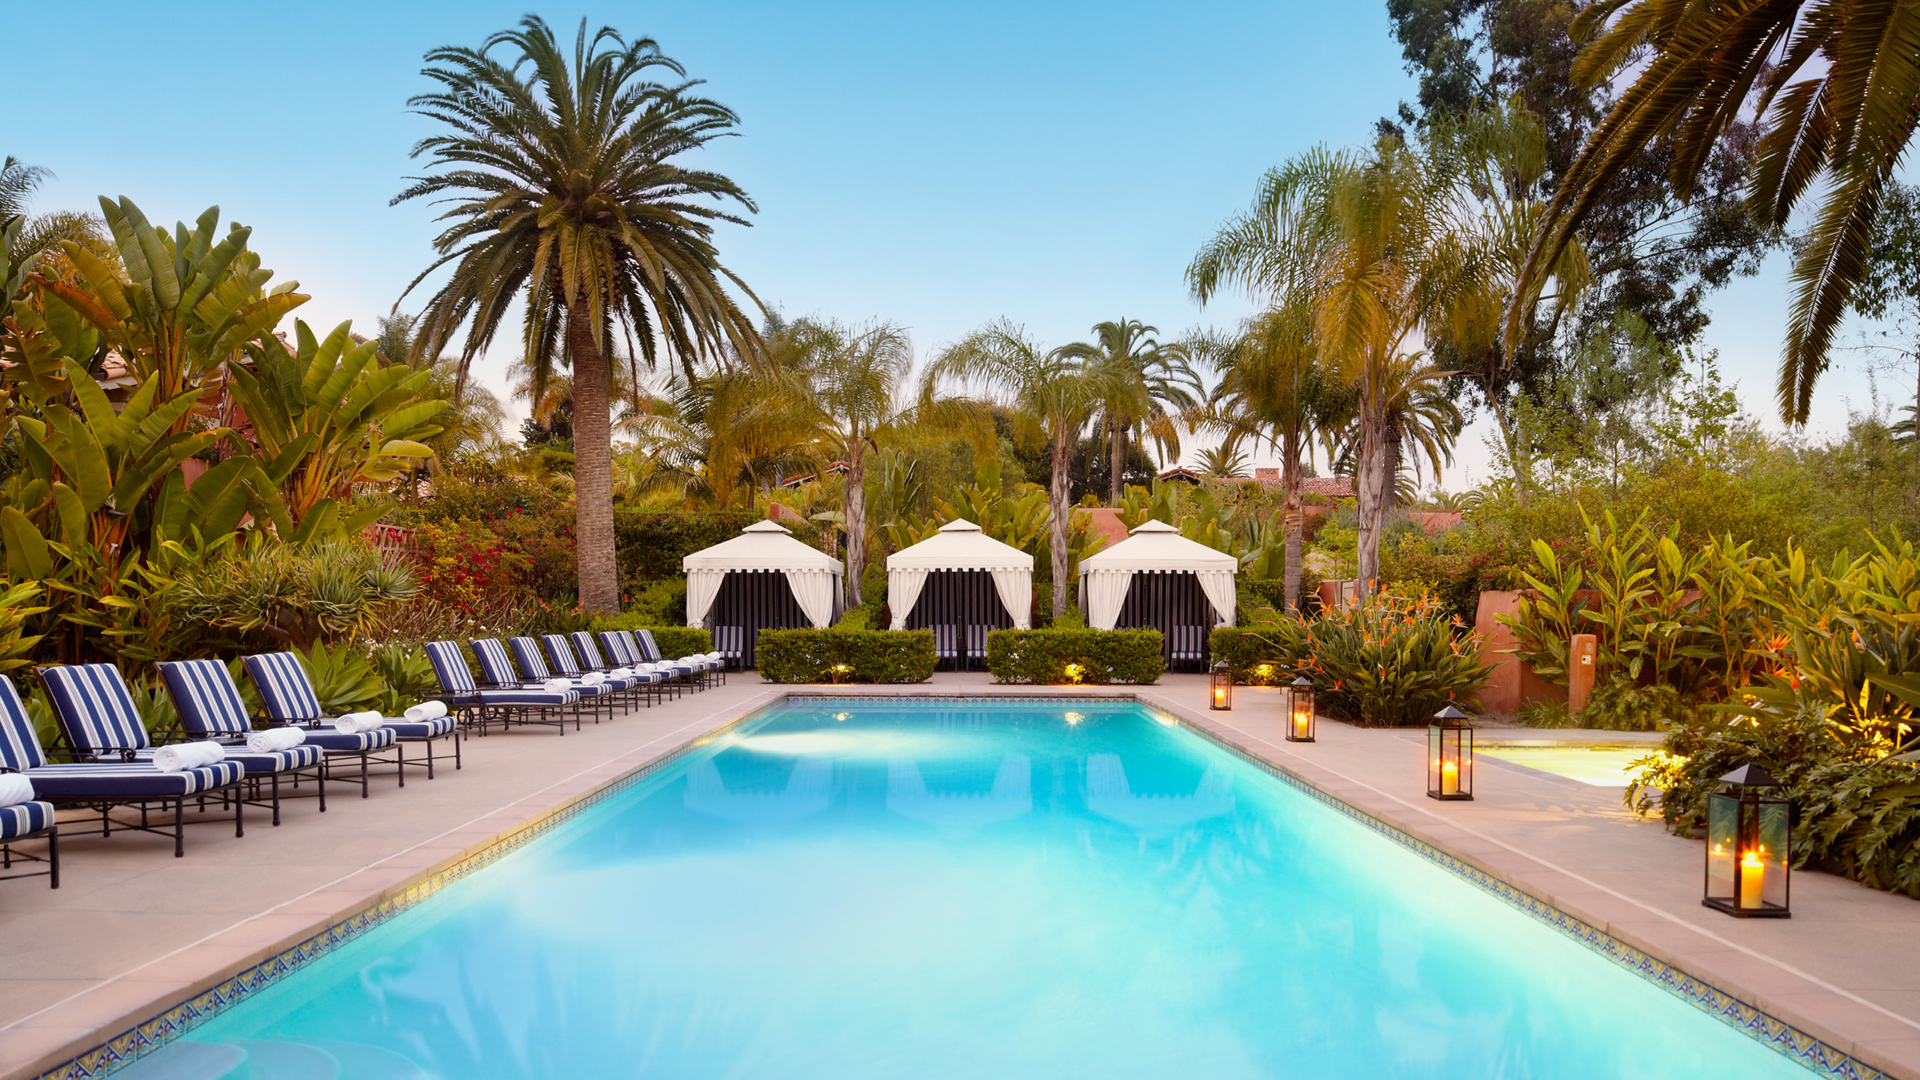 Rancho Valencia, Rancho Santa Fe, California - Healthy Living + Travel